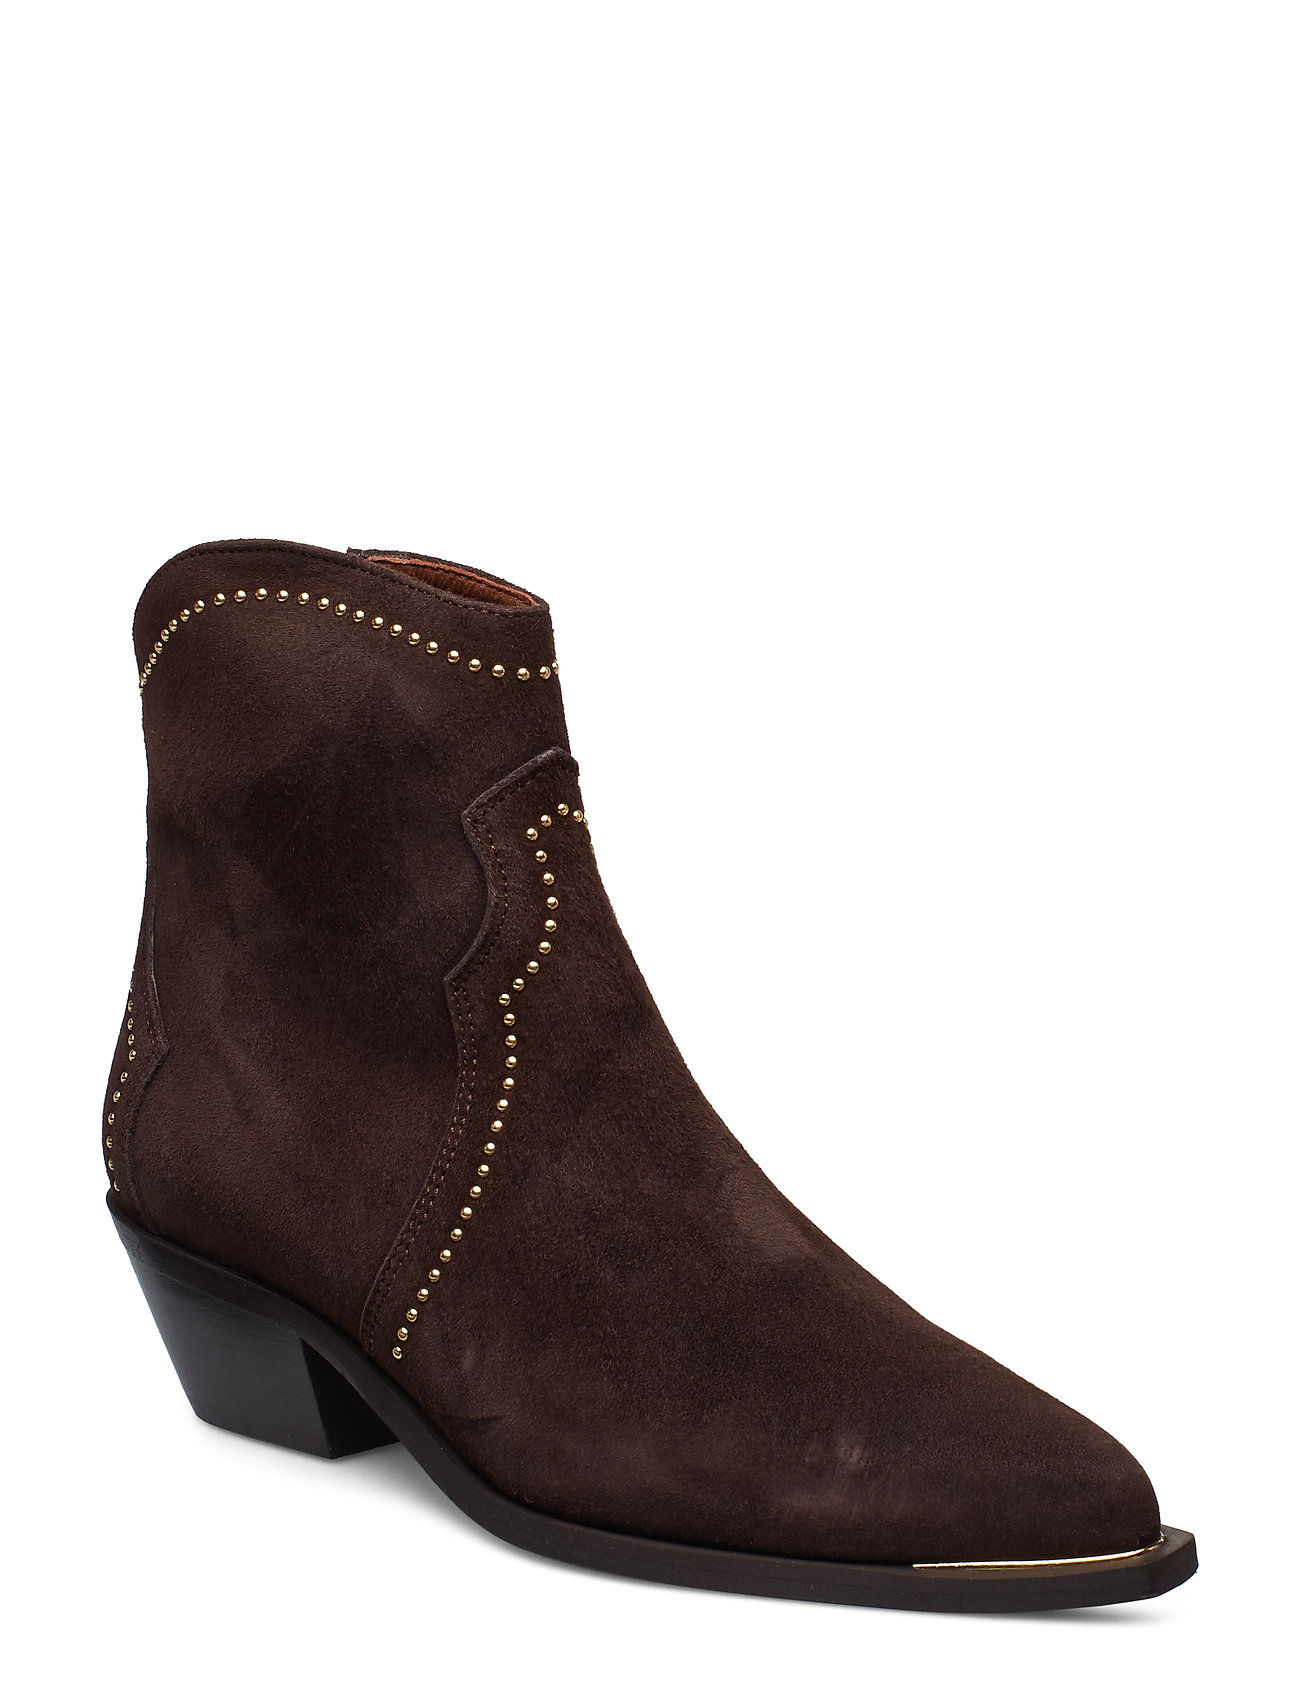 Image of Booties 3703 Shoes Boots Ankle Boots Ankle Boots With Heel Brun Billi Bi (3201657255)